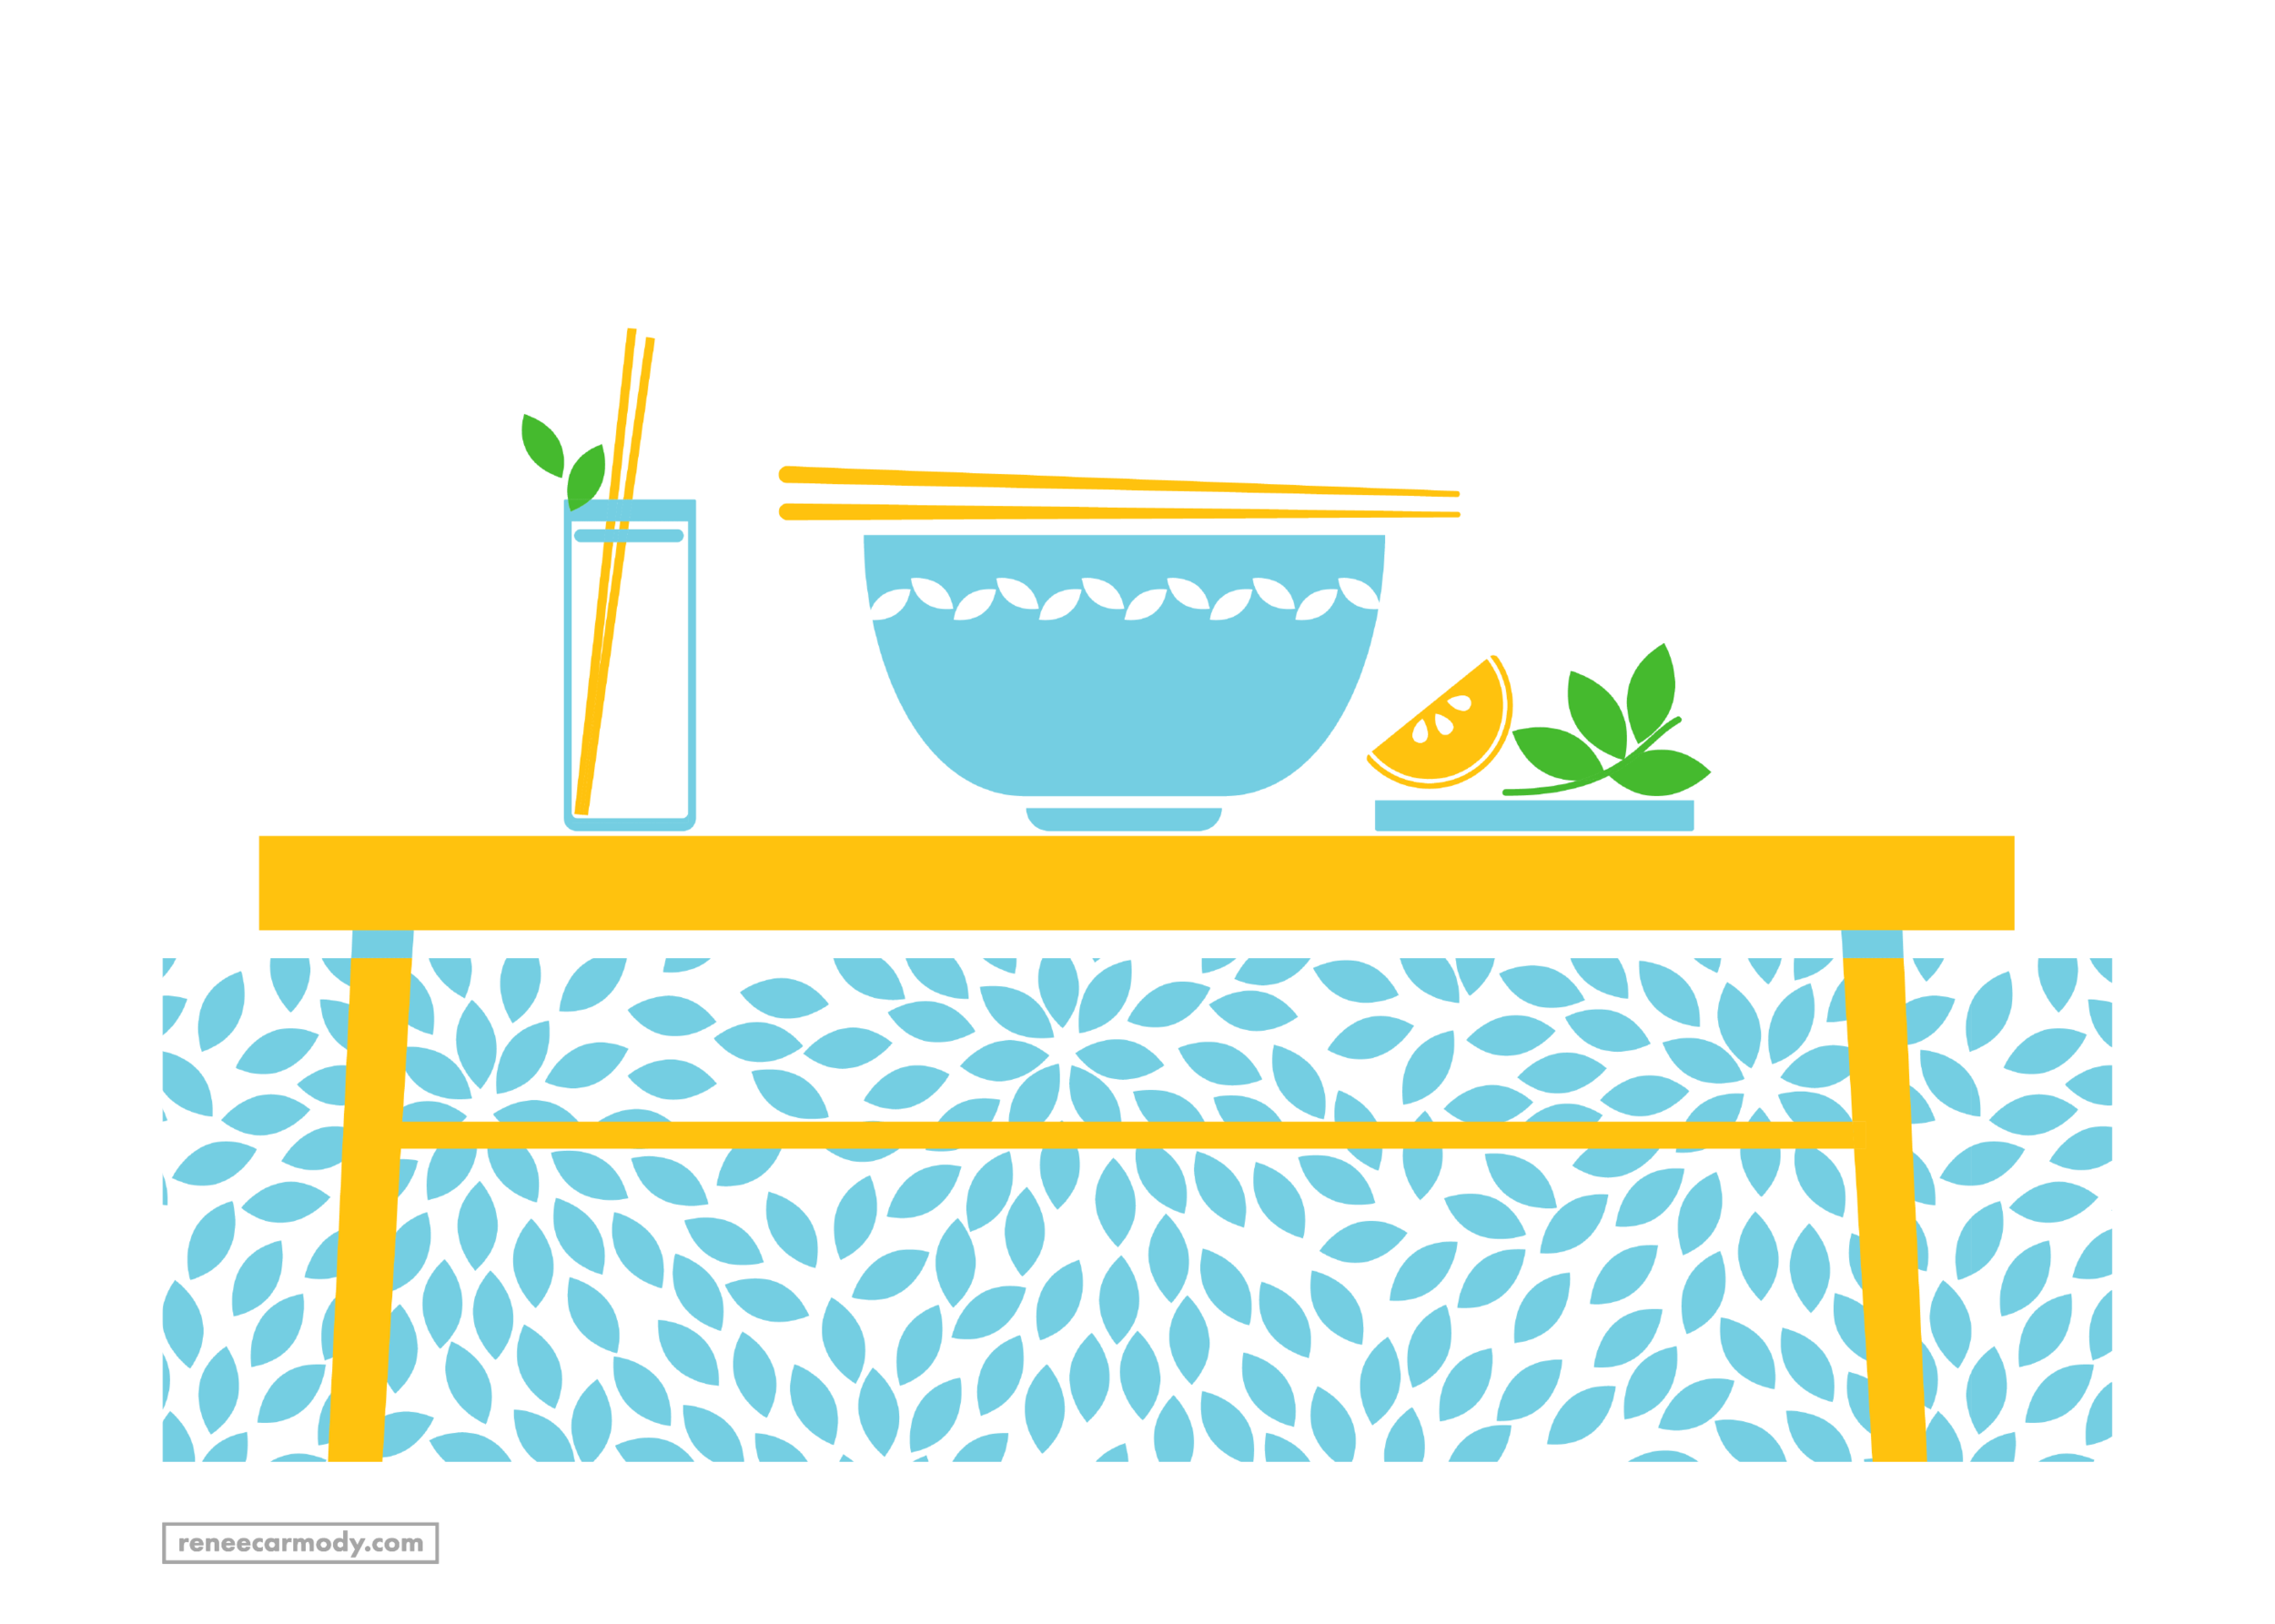 Food and dining illustration by Renee Carmody Design for Flourish Parkside, comissioned by Savi Communications—www.reneecarmody.com